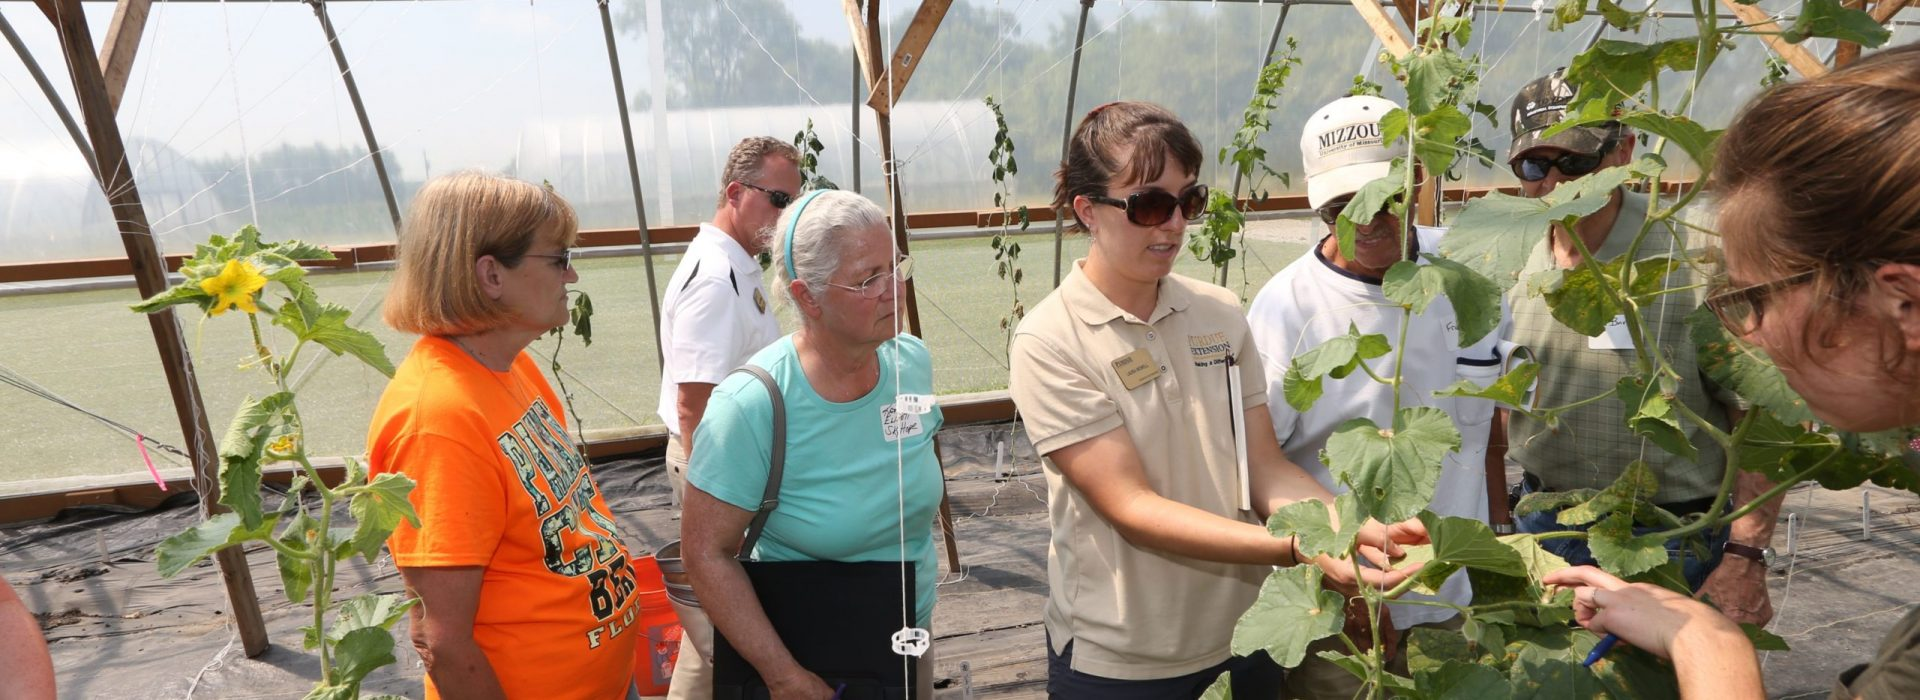 High Tunnels Field Day - 07/18/2017 - photos of the high tunnels at the Miegs Farm.